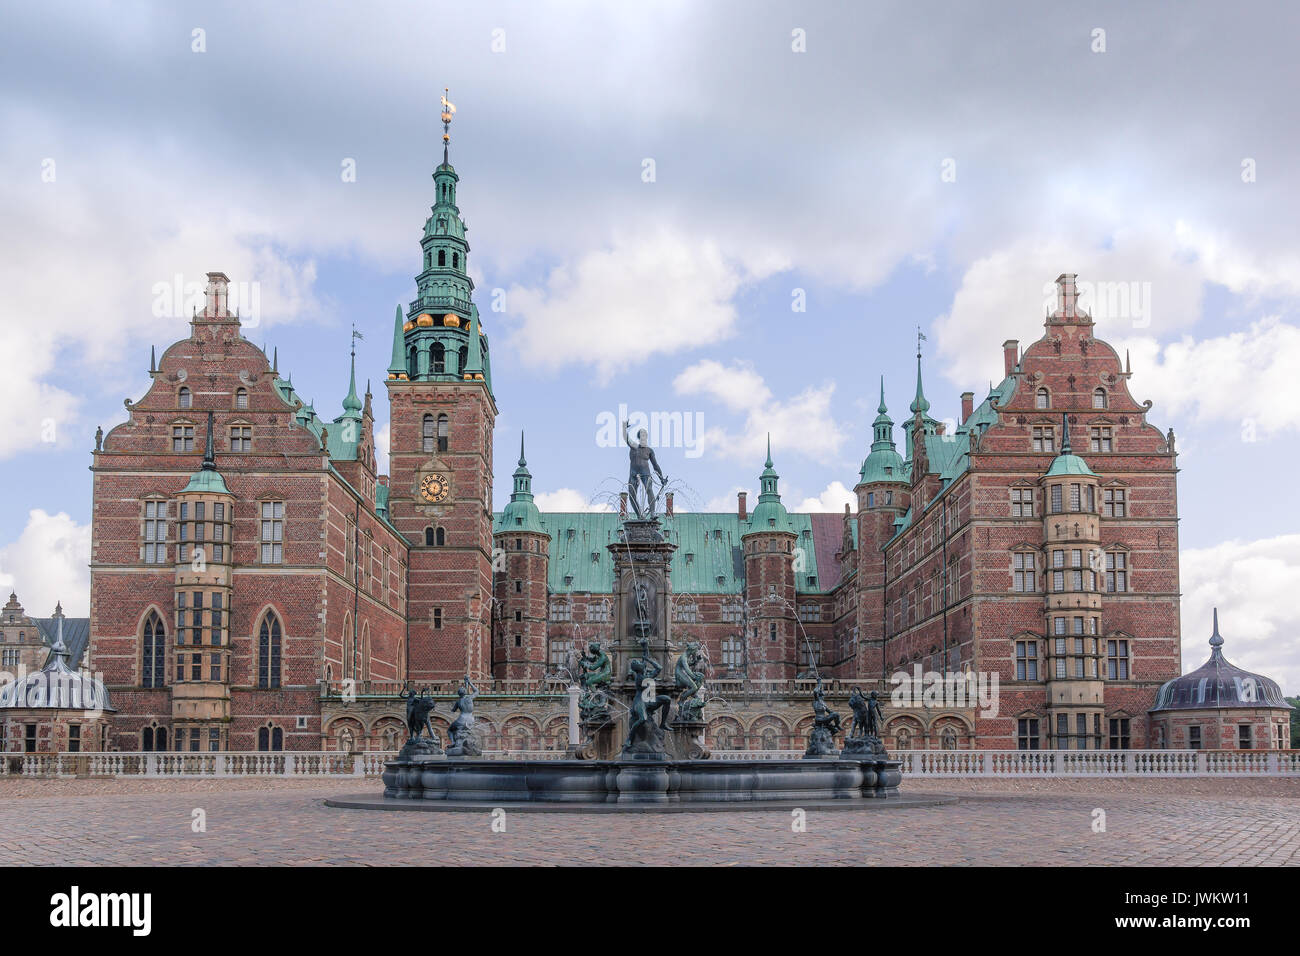 Neptune Fountain in front of Frederiksborg castle, the largest Renaissance residence in Scandinavia. Hillerod, Denmark, August 6, 2017 - Stock Image